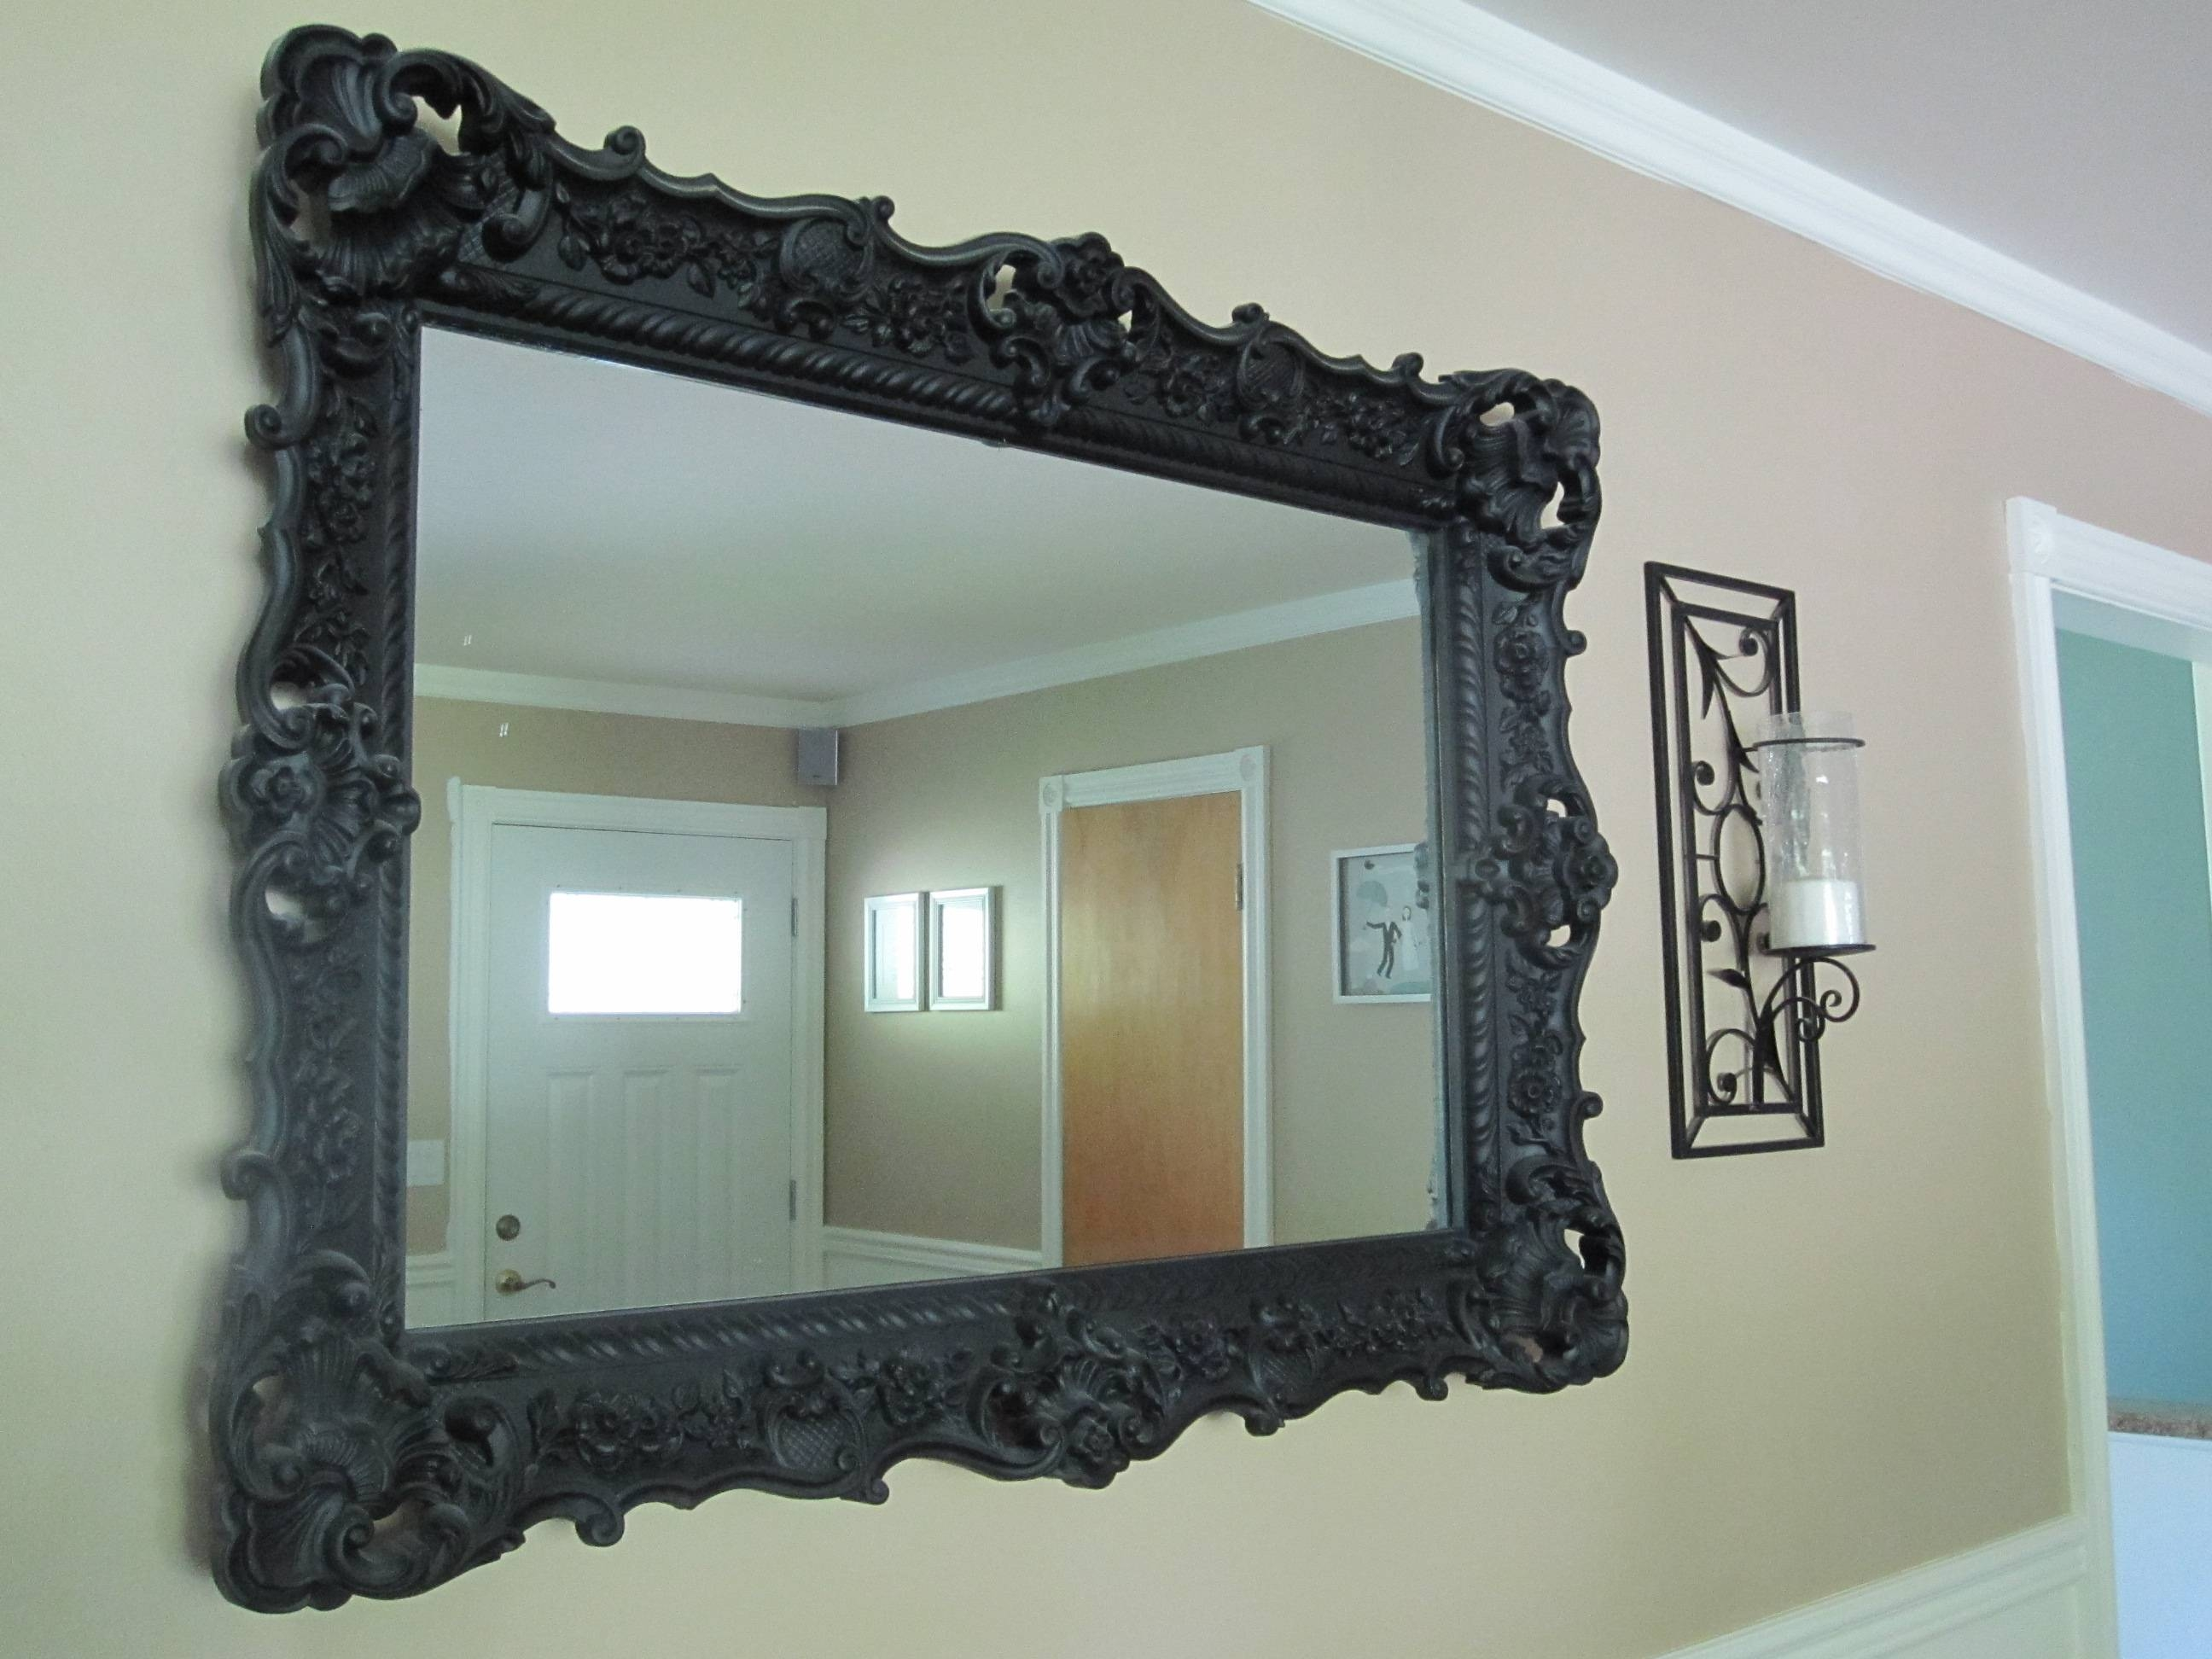 Black Mirrors For Sale – Harpsounds.co intended for Black Large Mirrors (Image 4 of 15)